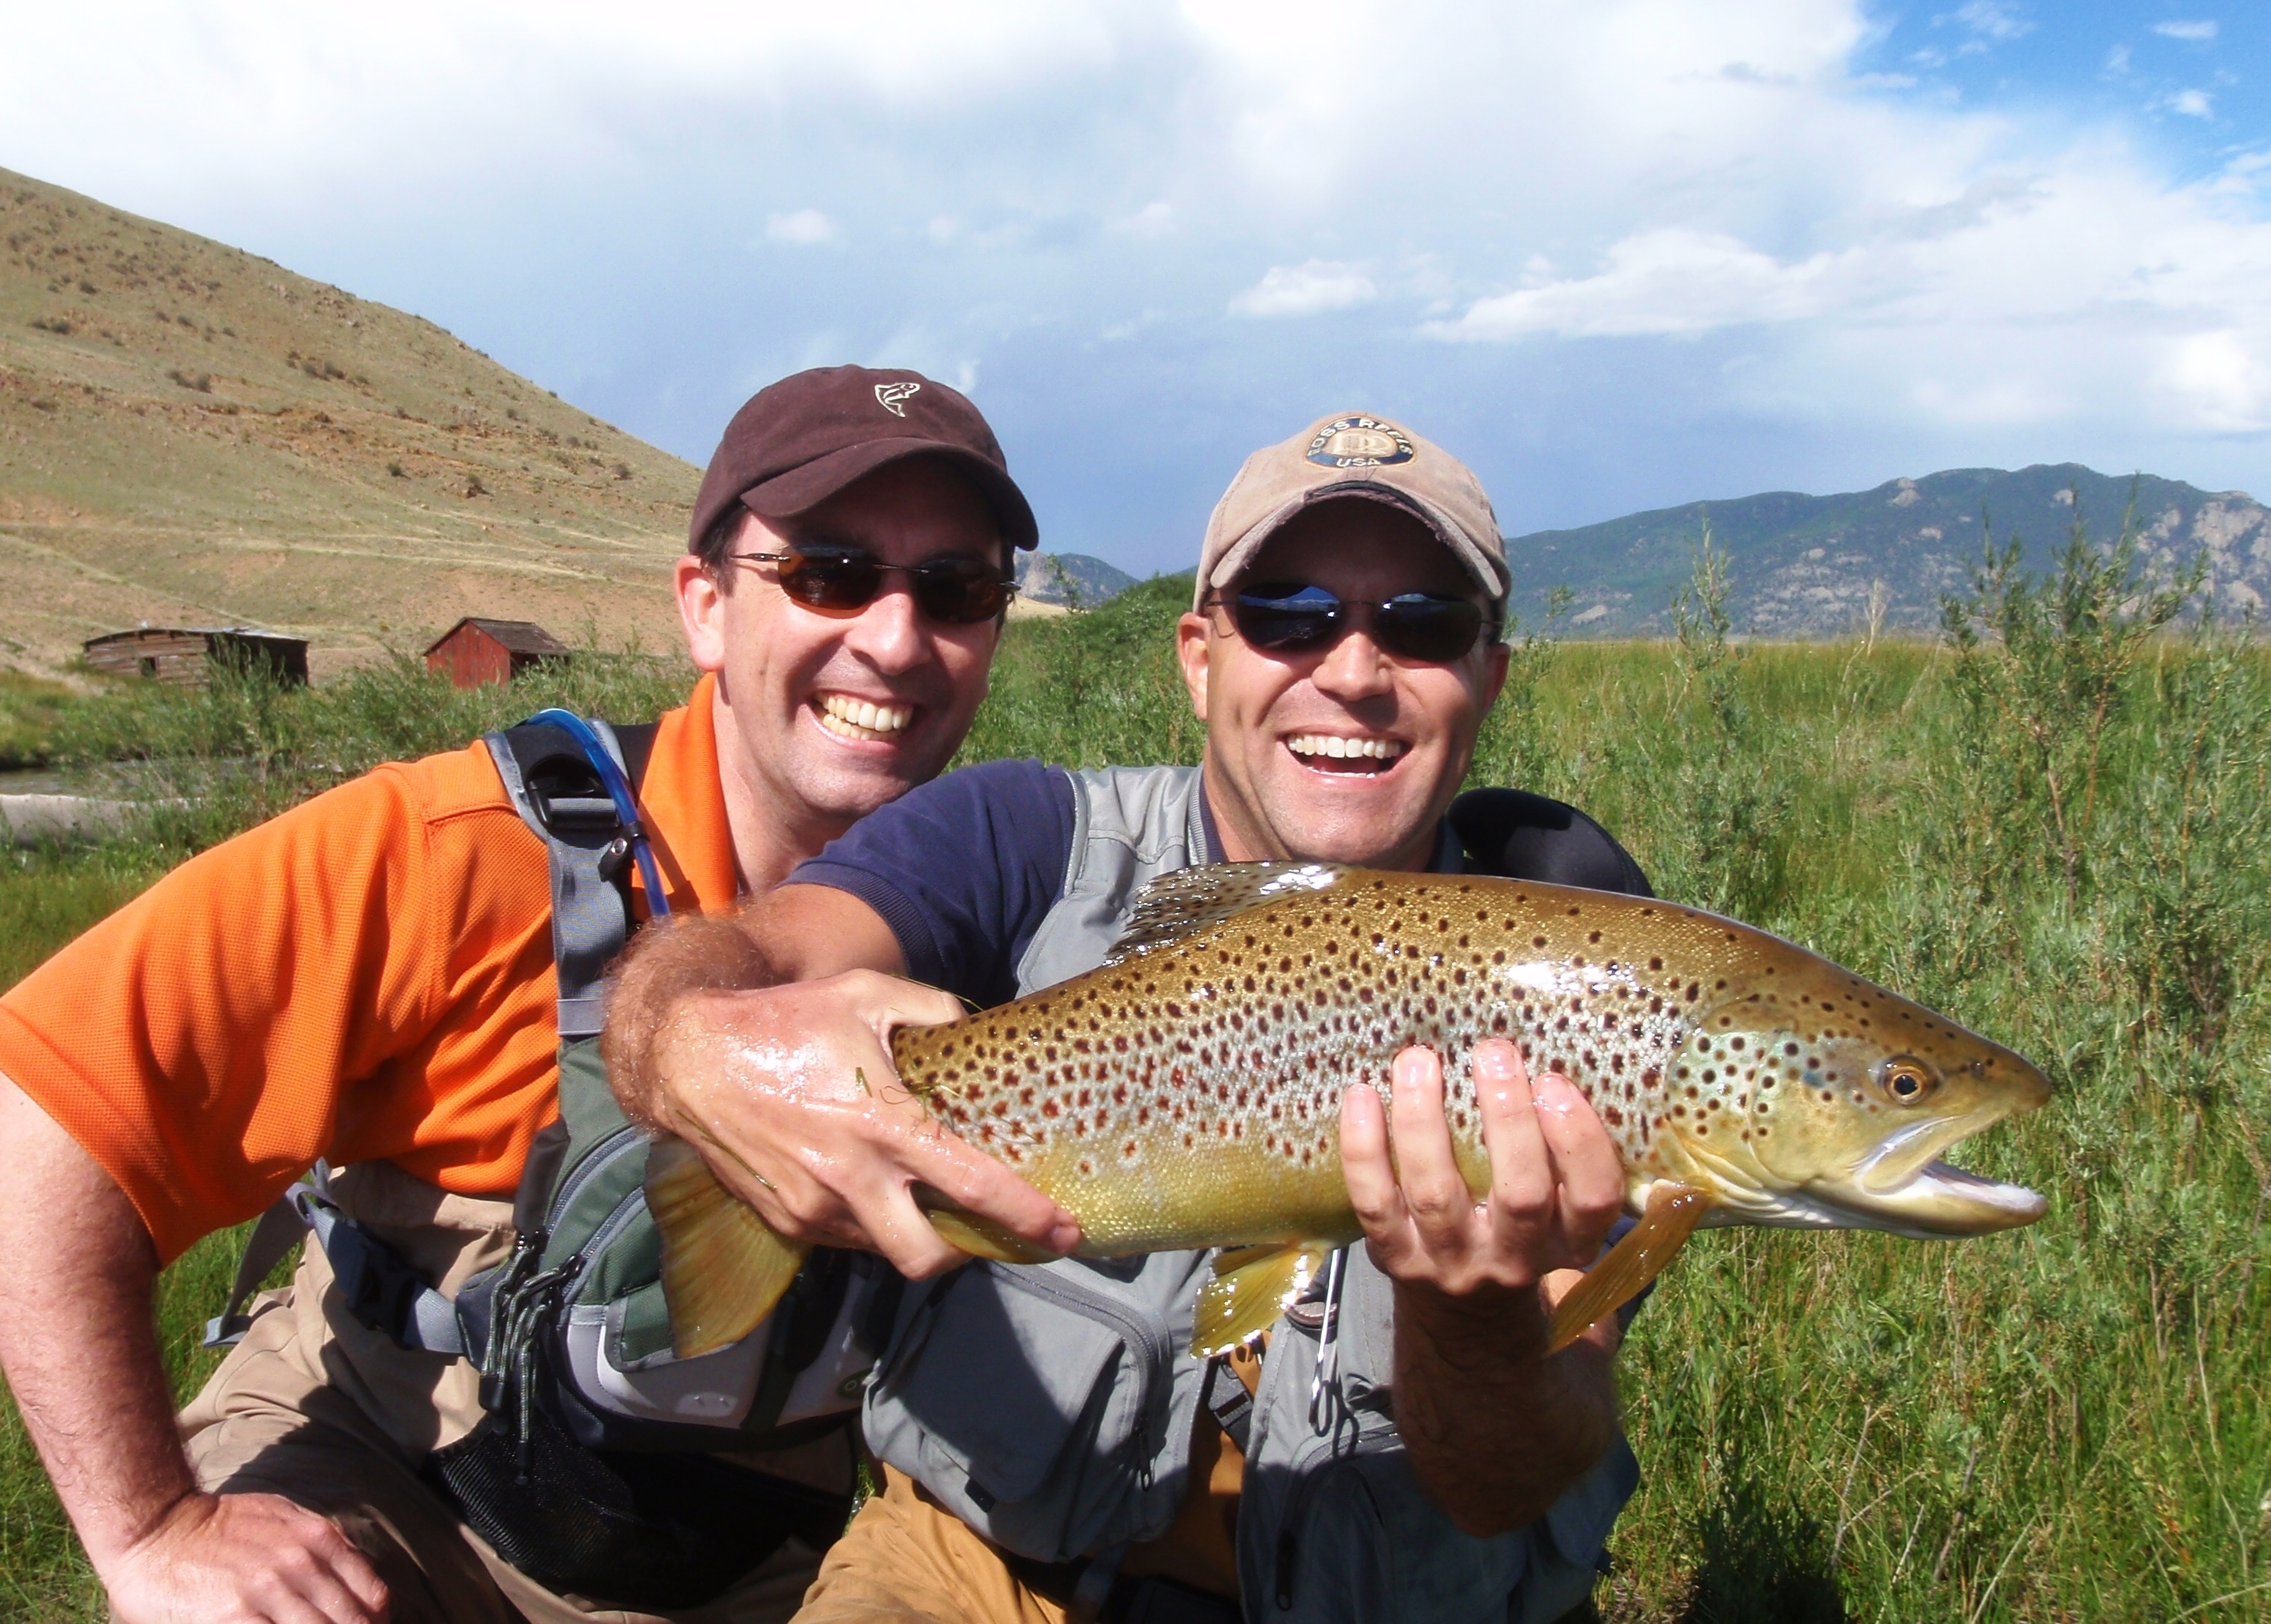 Colorado trout hunters fly fishing guides coupons near me for Trout fishing near me